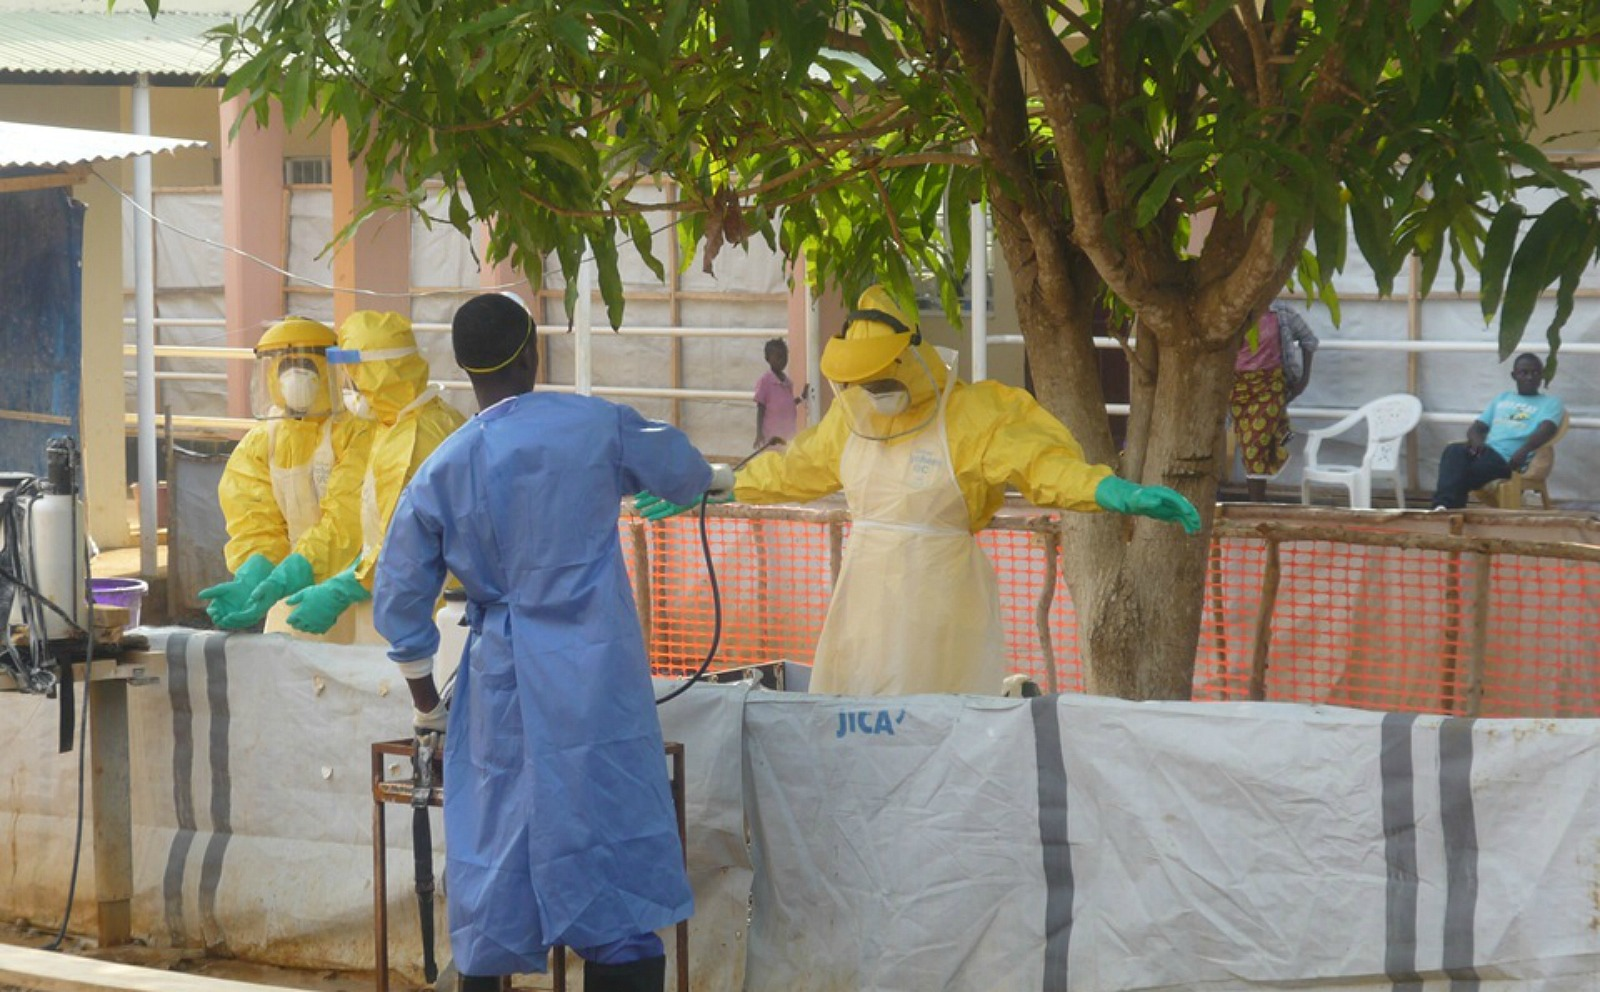 Health workers being hosed down by a fellow staff member.